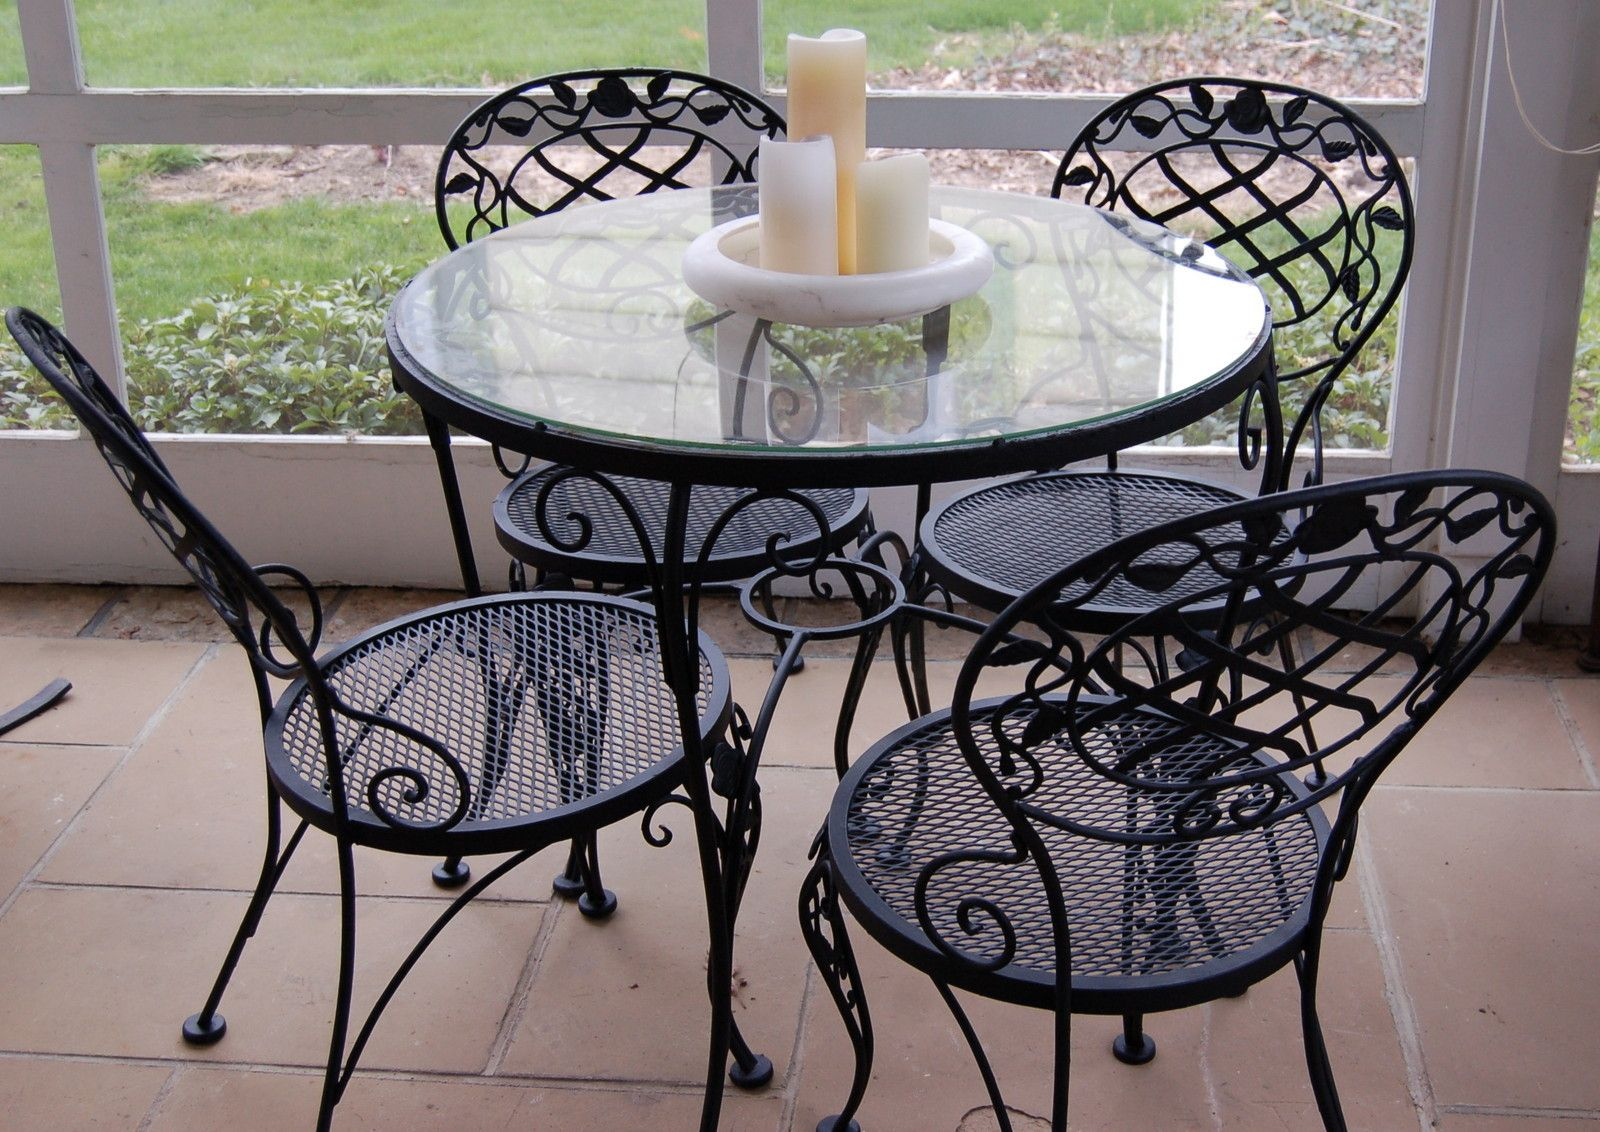 Woodard Chantilly Rose Round Table With 4 Chairs Offered On Ebay